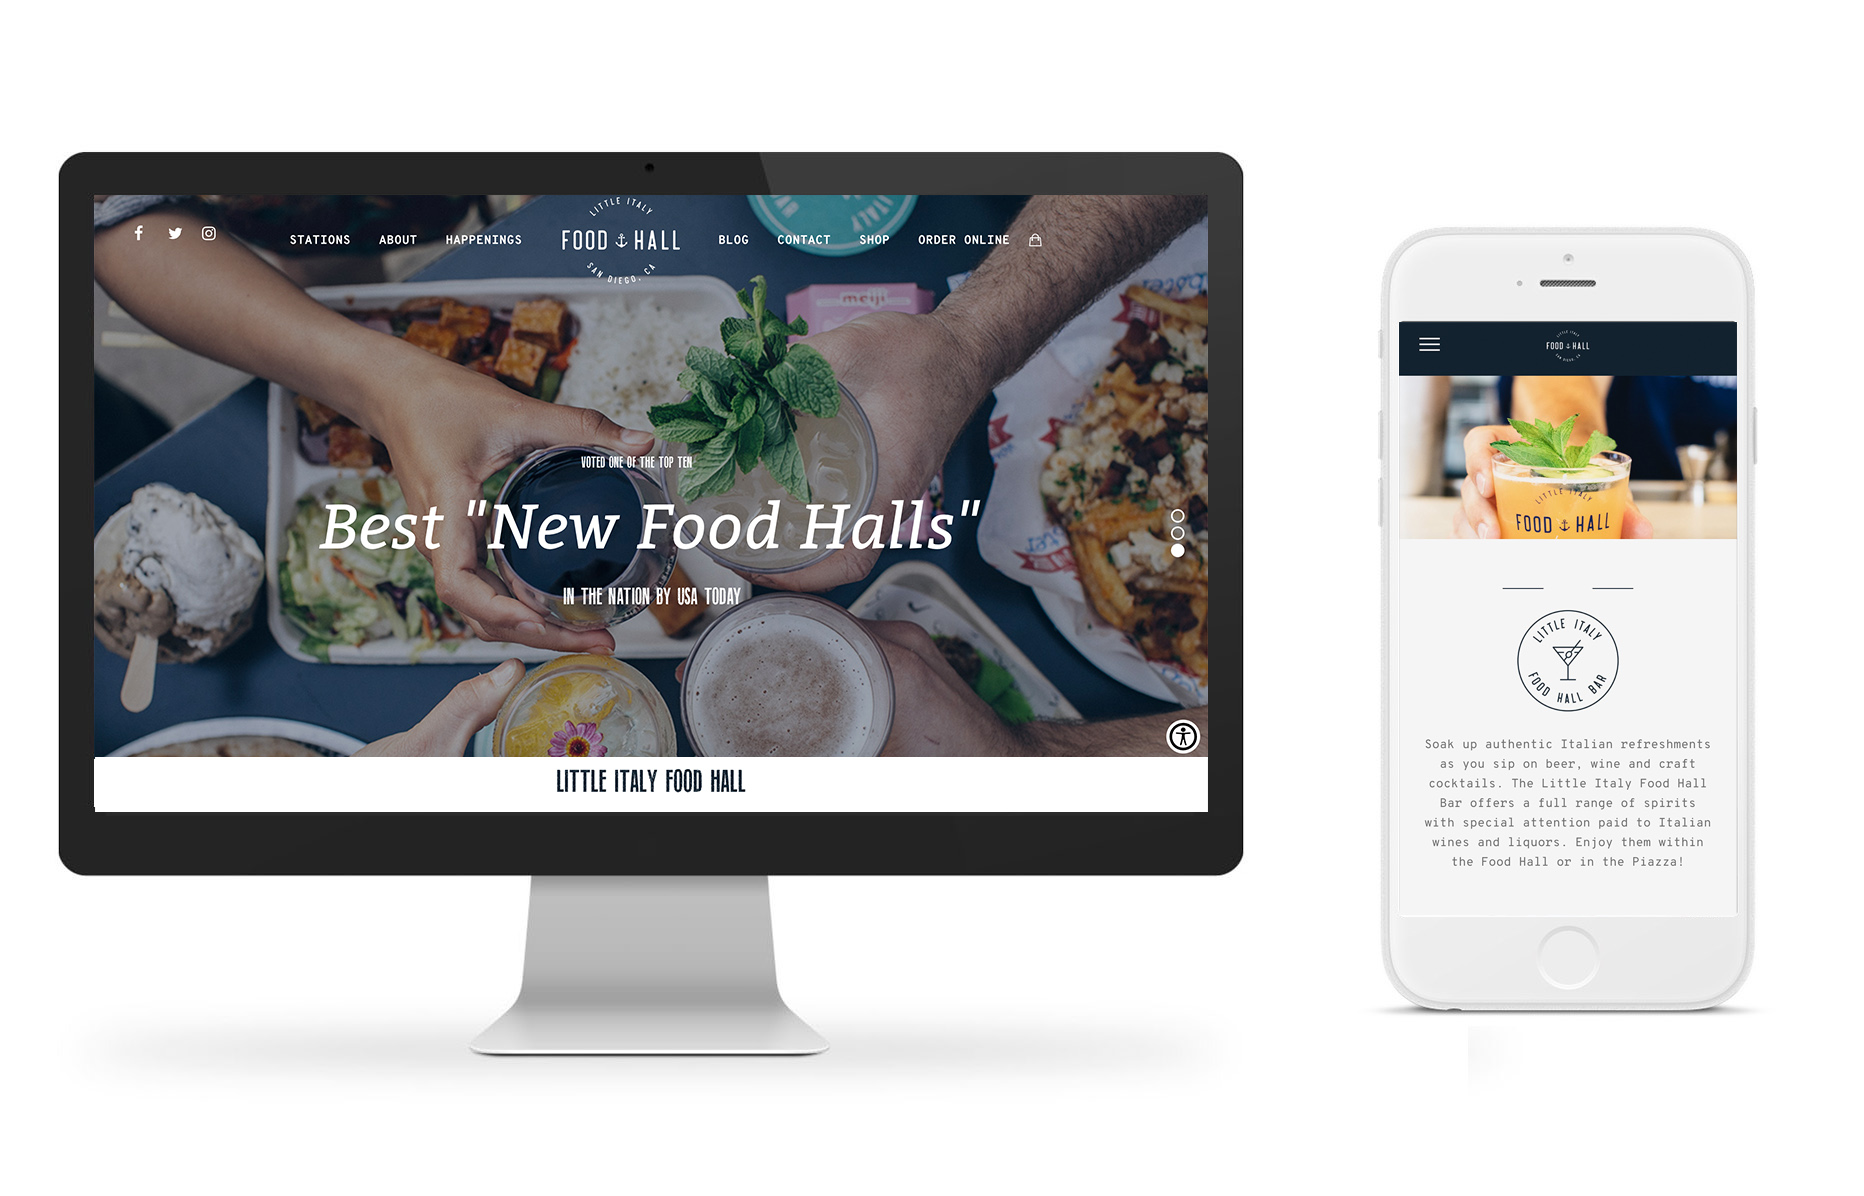 Various devices showcasing the Little Italy Food Hall website design.